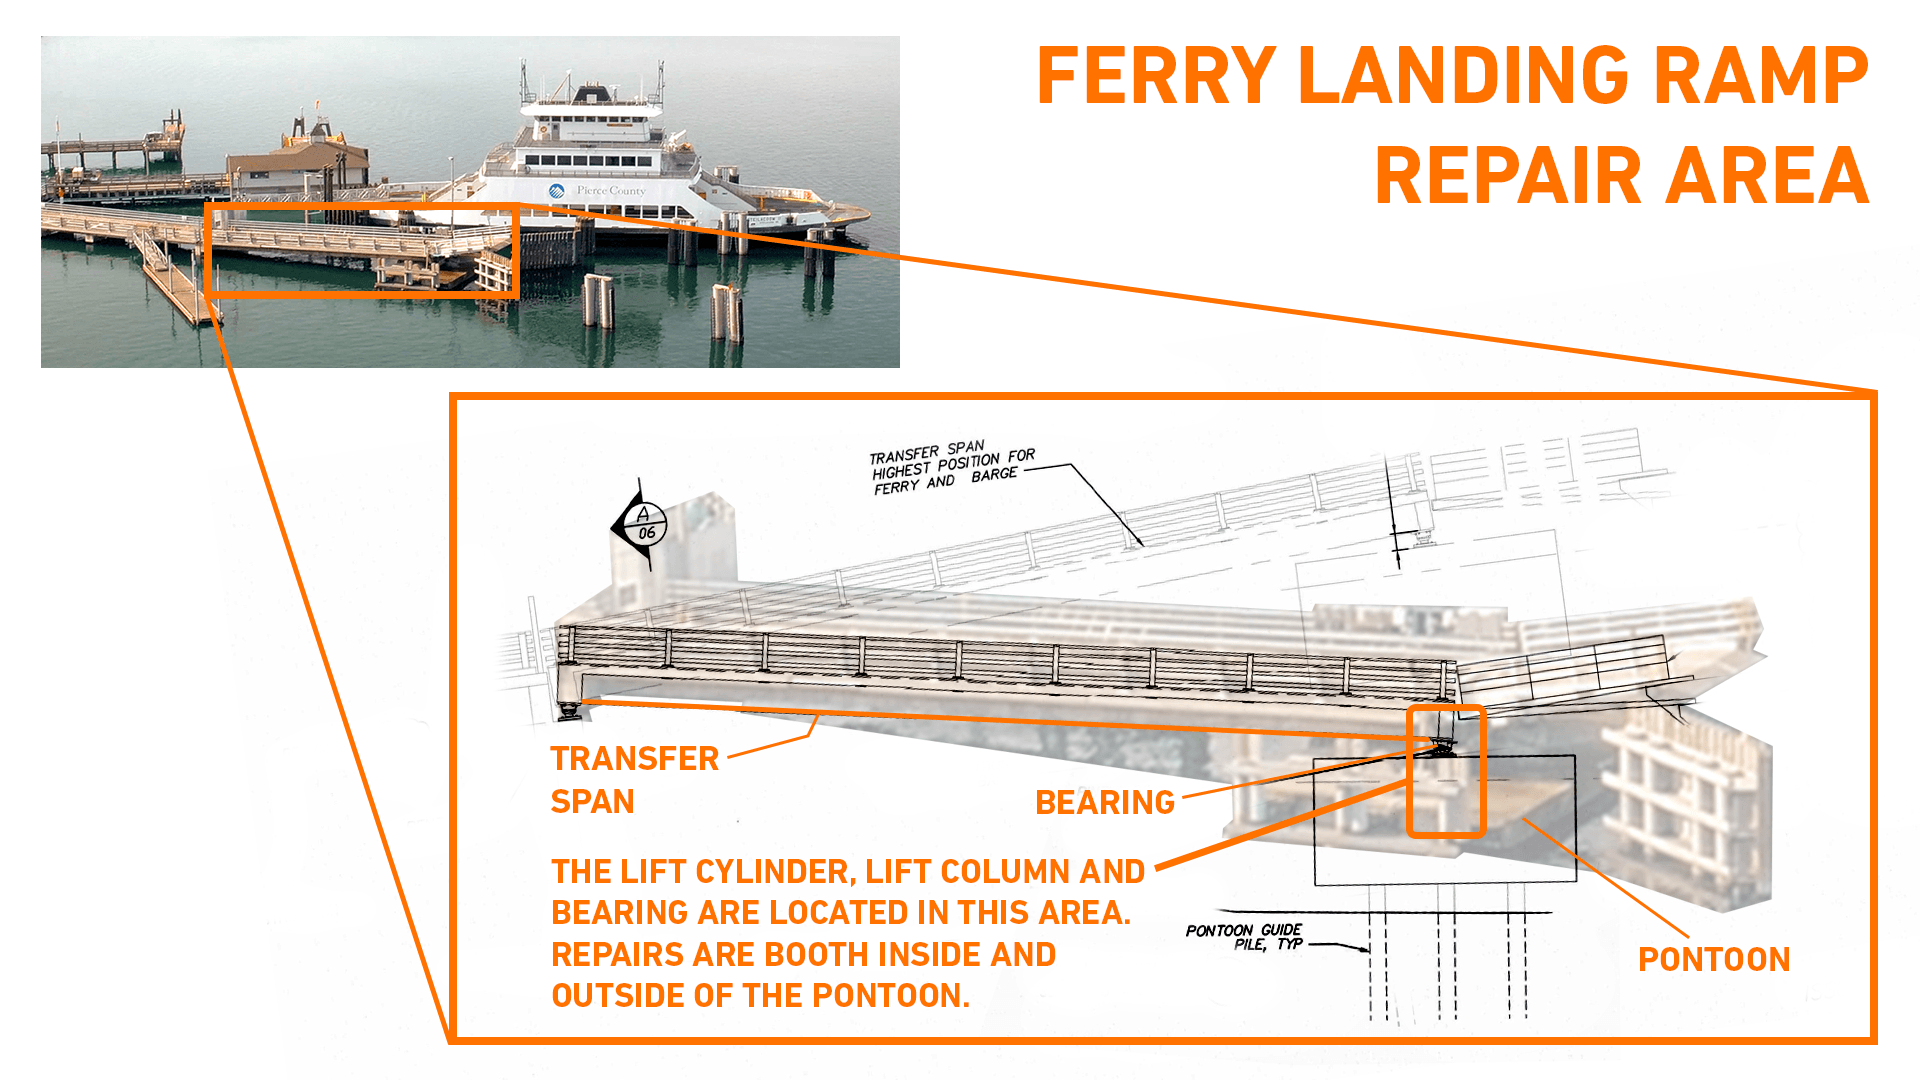 Ferry Landing Ramp Repair Area_v2